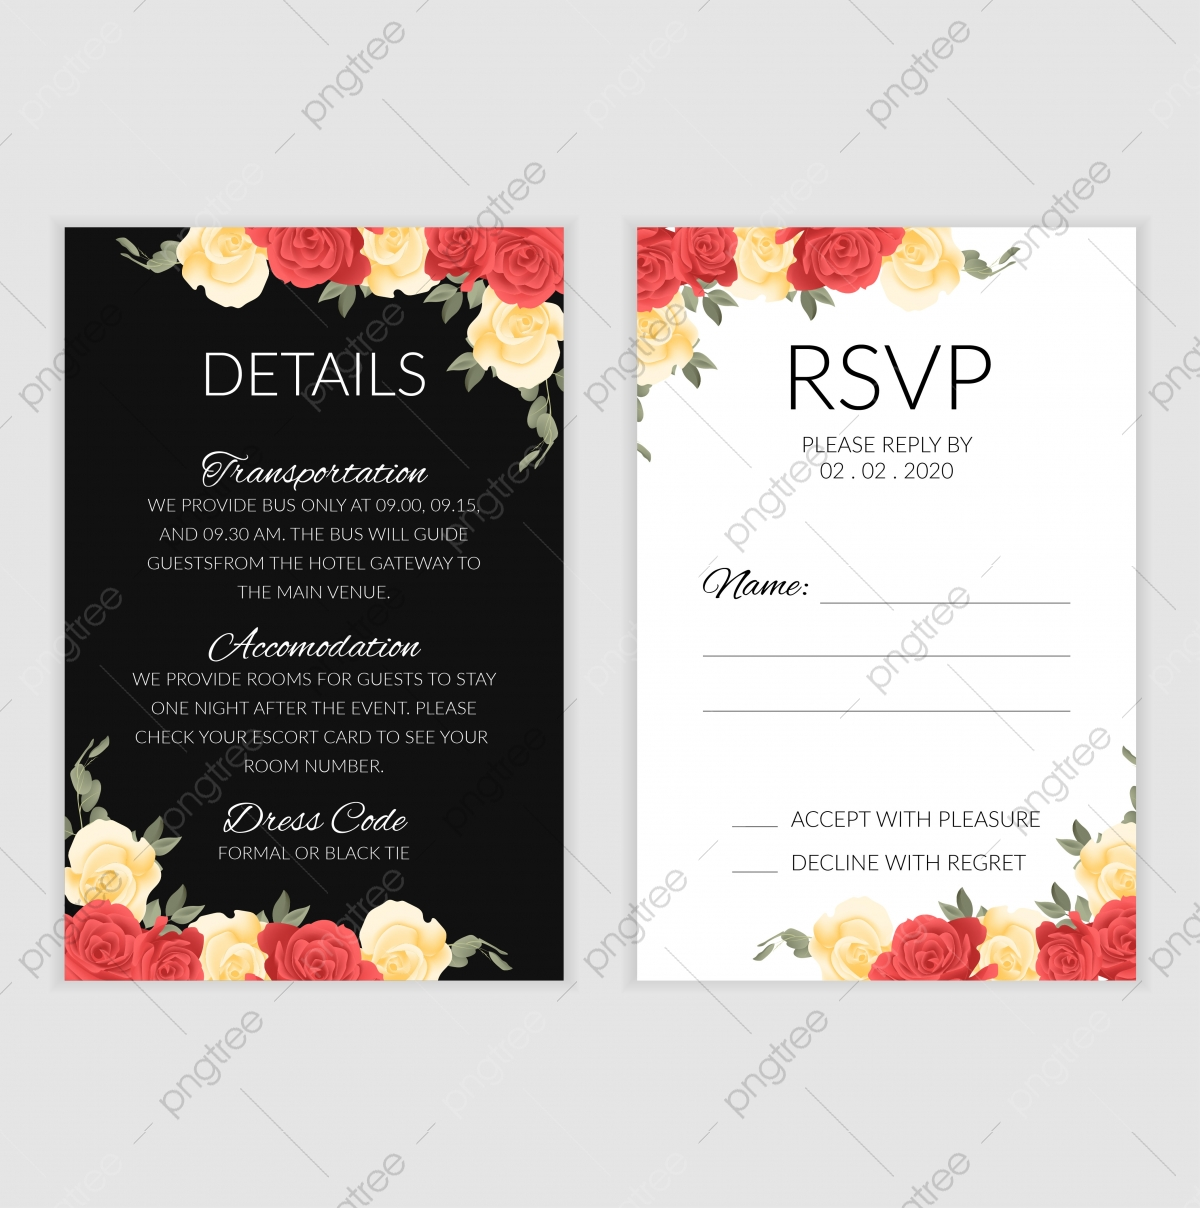 Wedding Rsvp Cards Template from png.pngtree.com